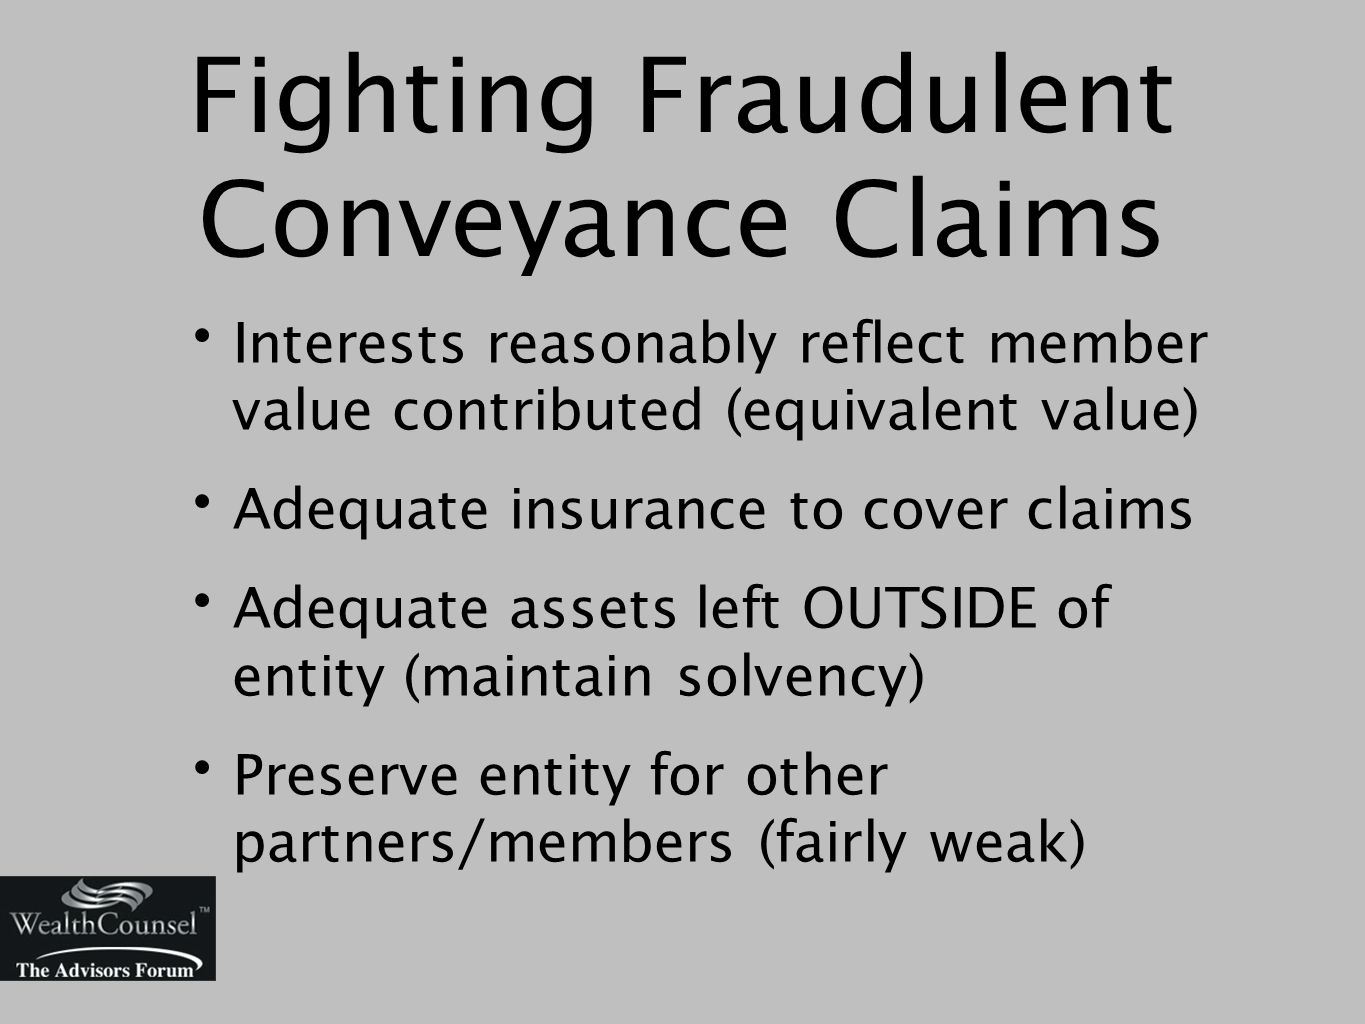 Fighting Fraudulent Conveyance Claims Interests reasonably reflect member value contributed (equivalent value) Adequate insurance to cover claims Adequate assets left OUTSIDE of entity (maintain solvency) Preserve entity for other partners/members (fairly weak)